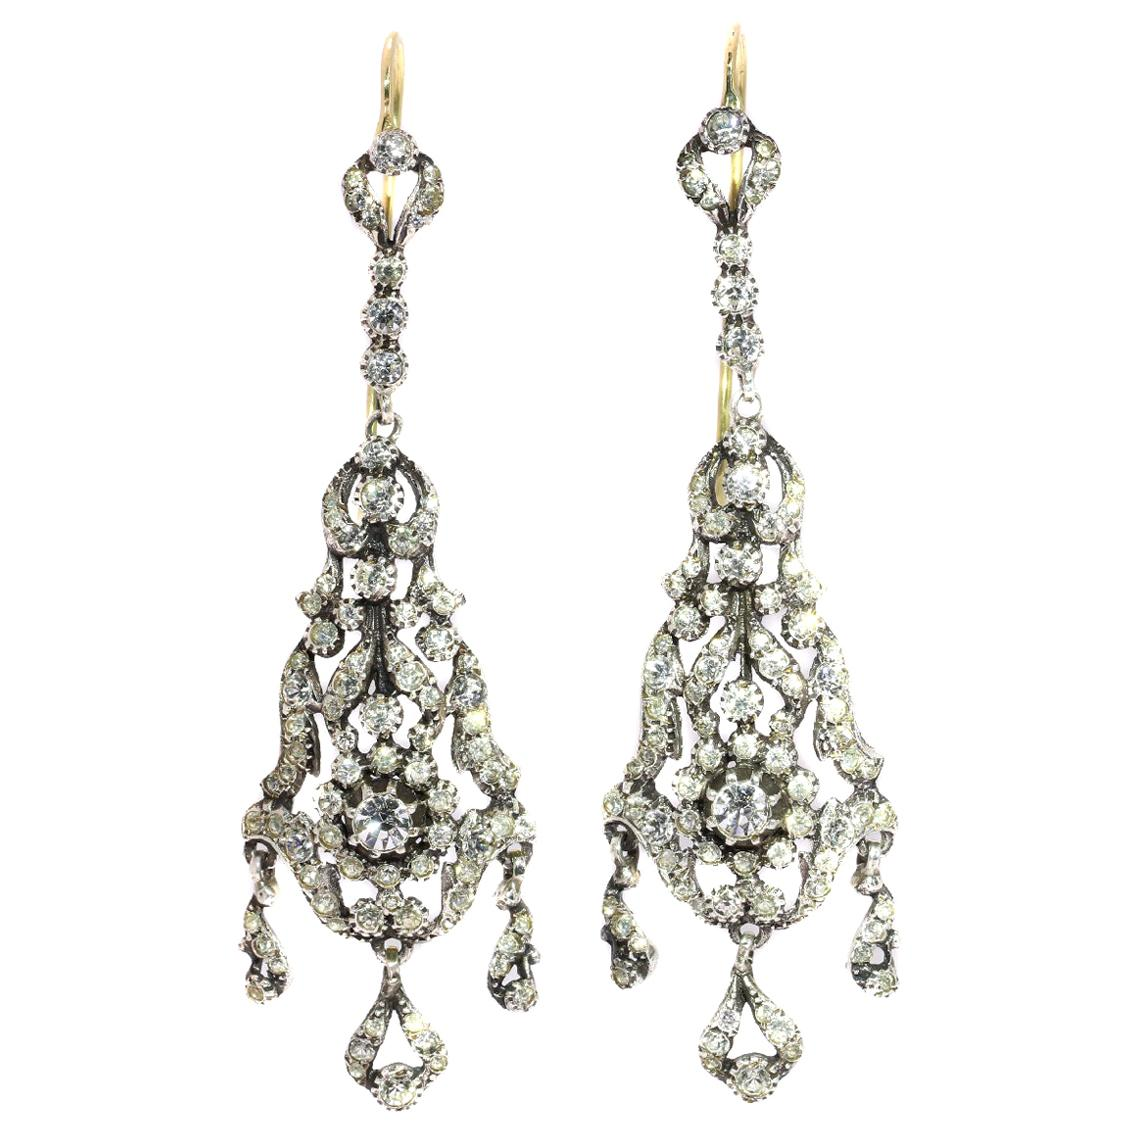 d5f0384976cd71 Victorian Earrings - 555 For Sale at 1stdibs